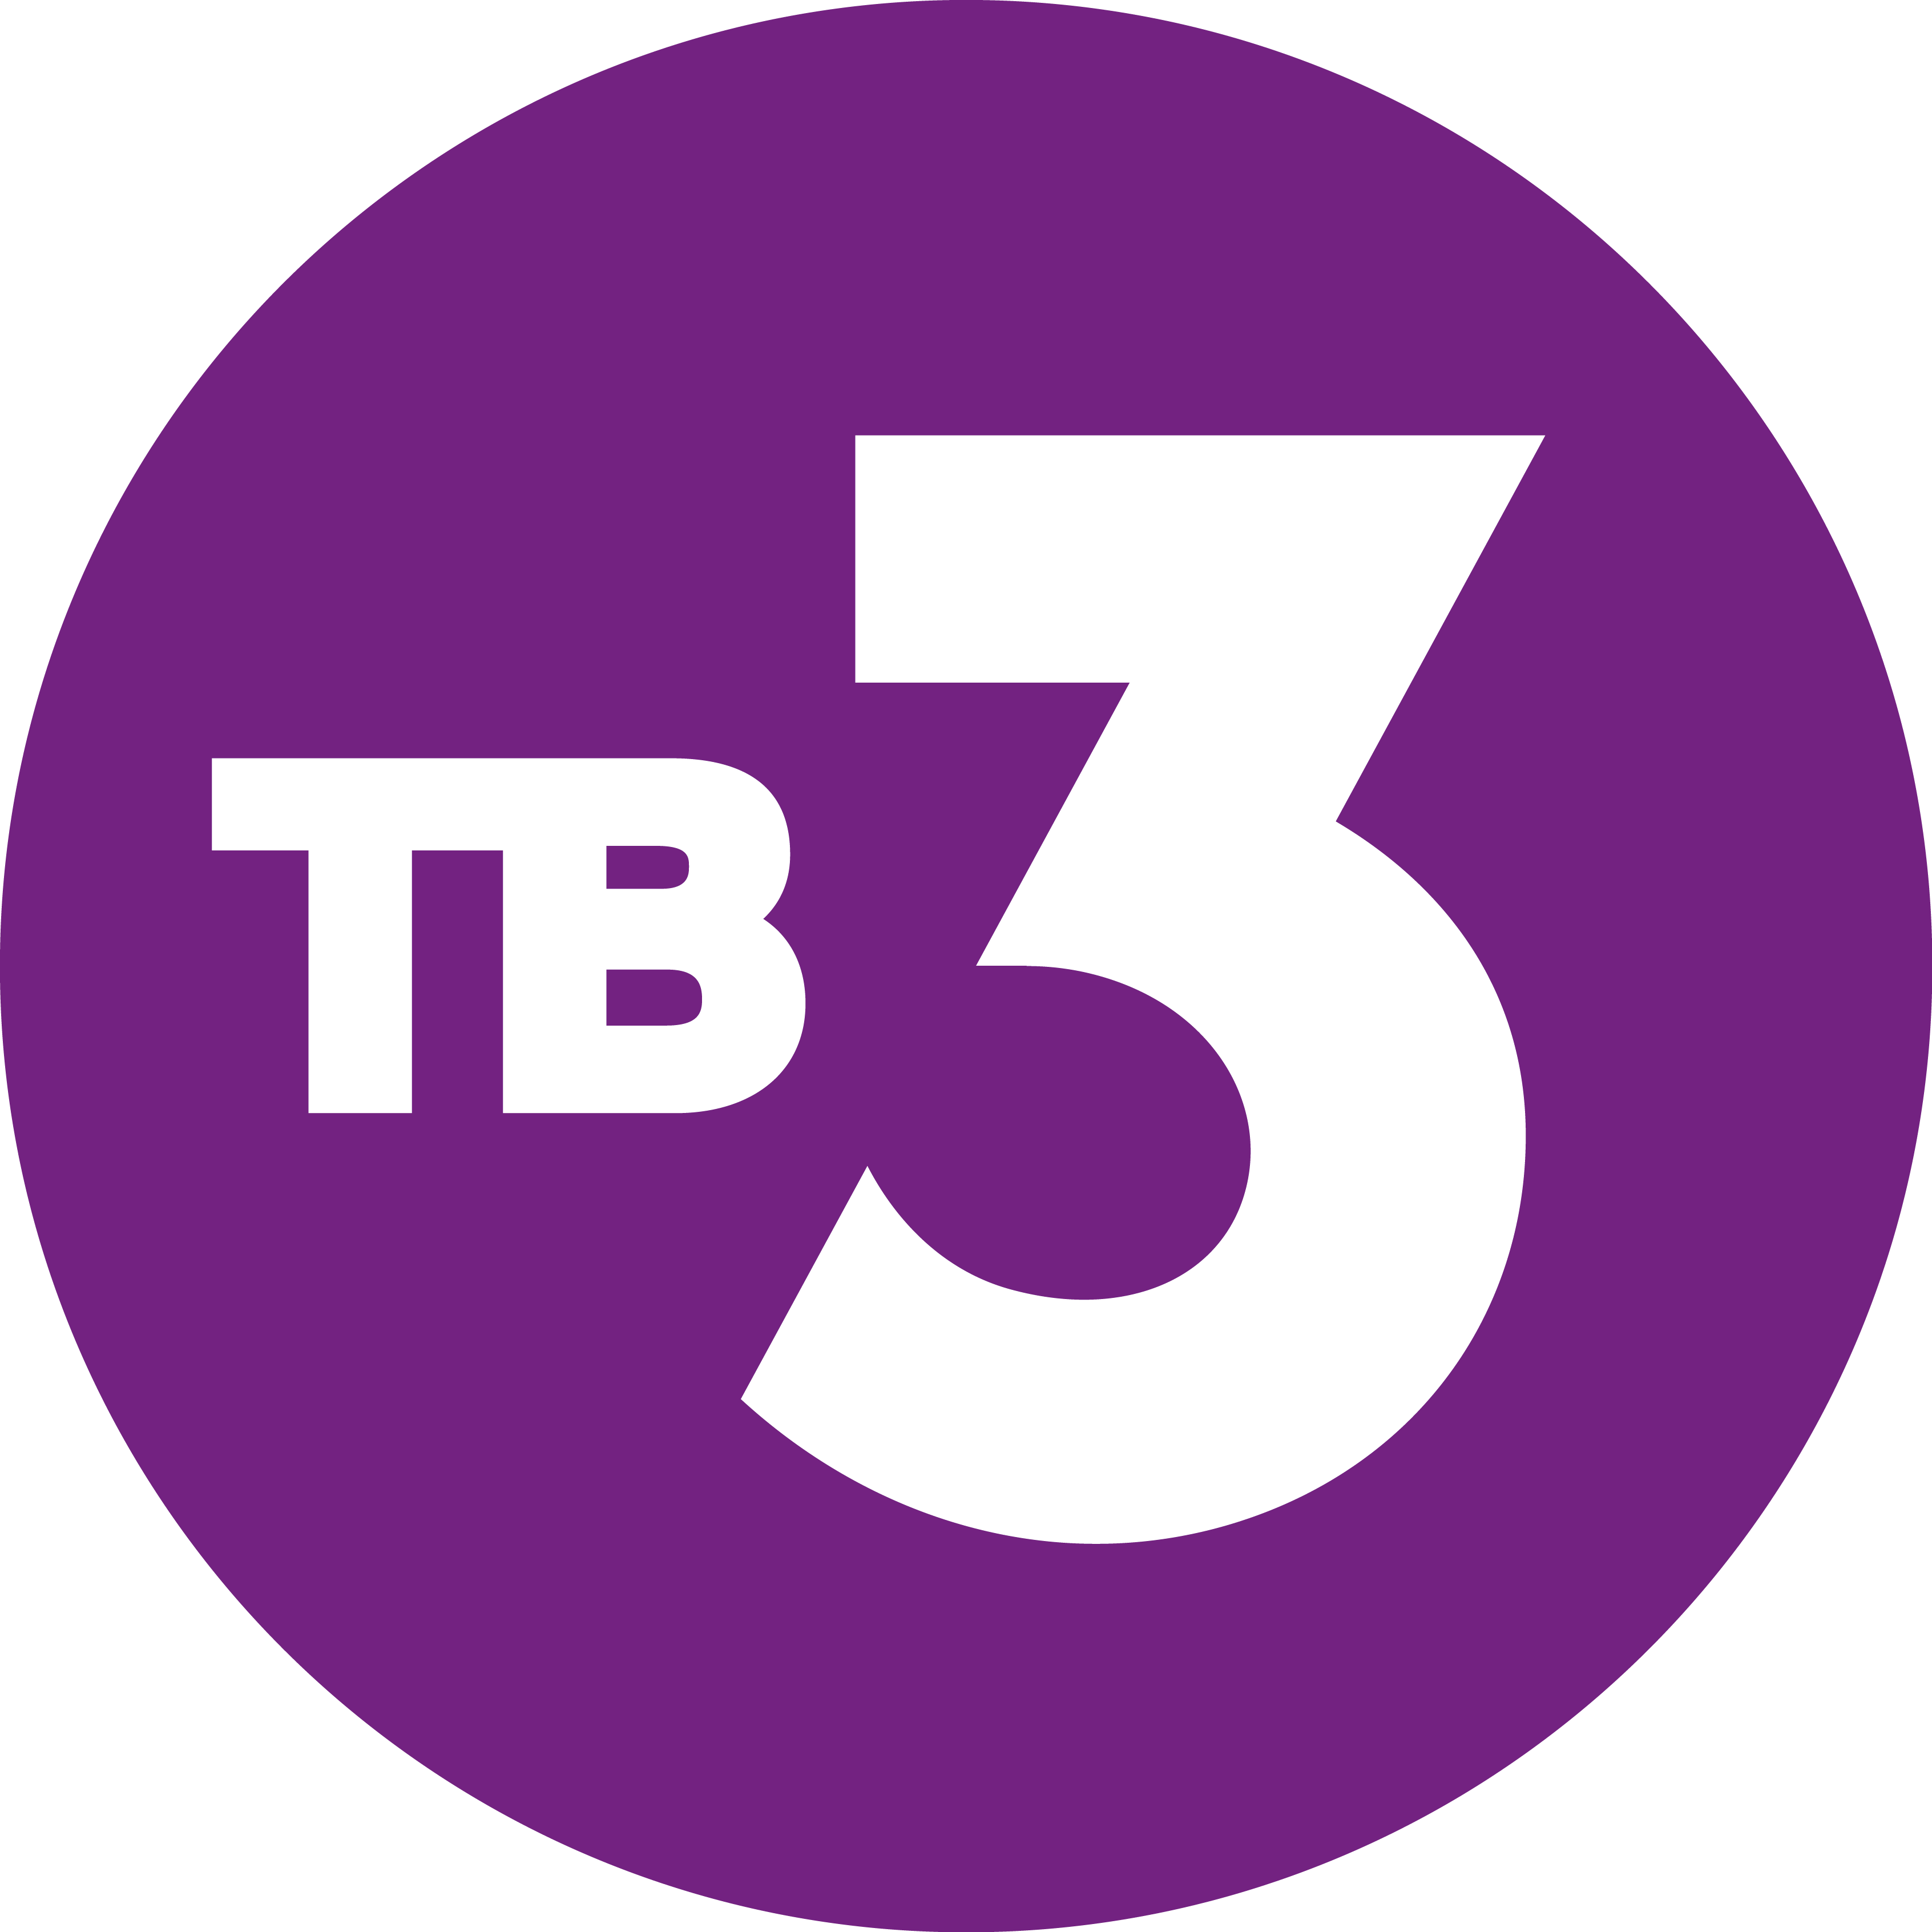 3 logo png. File tv wikimedia commons